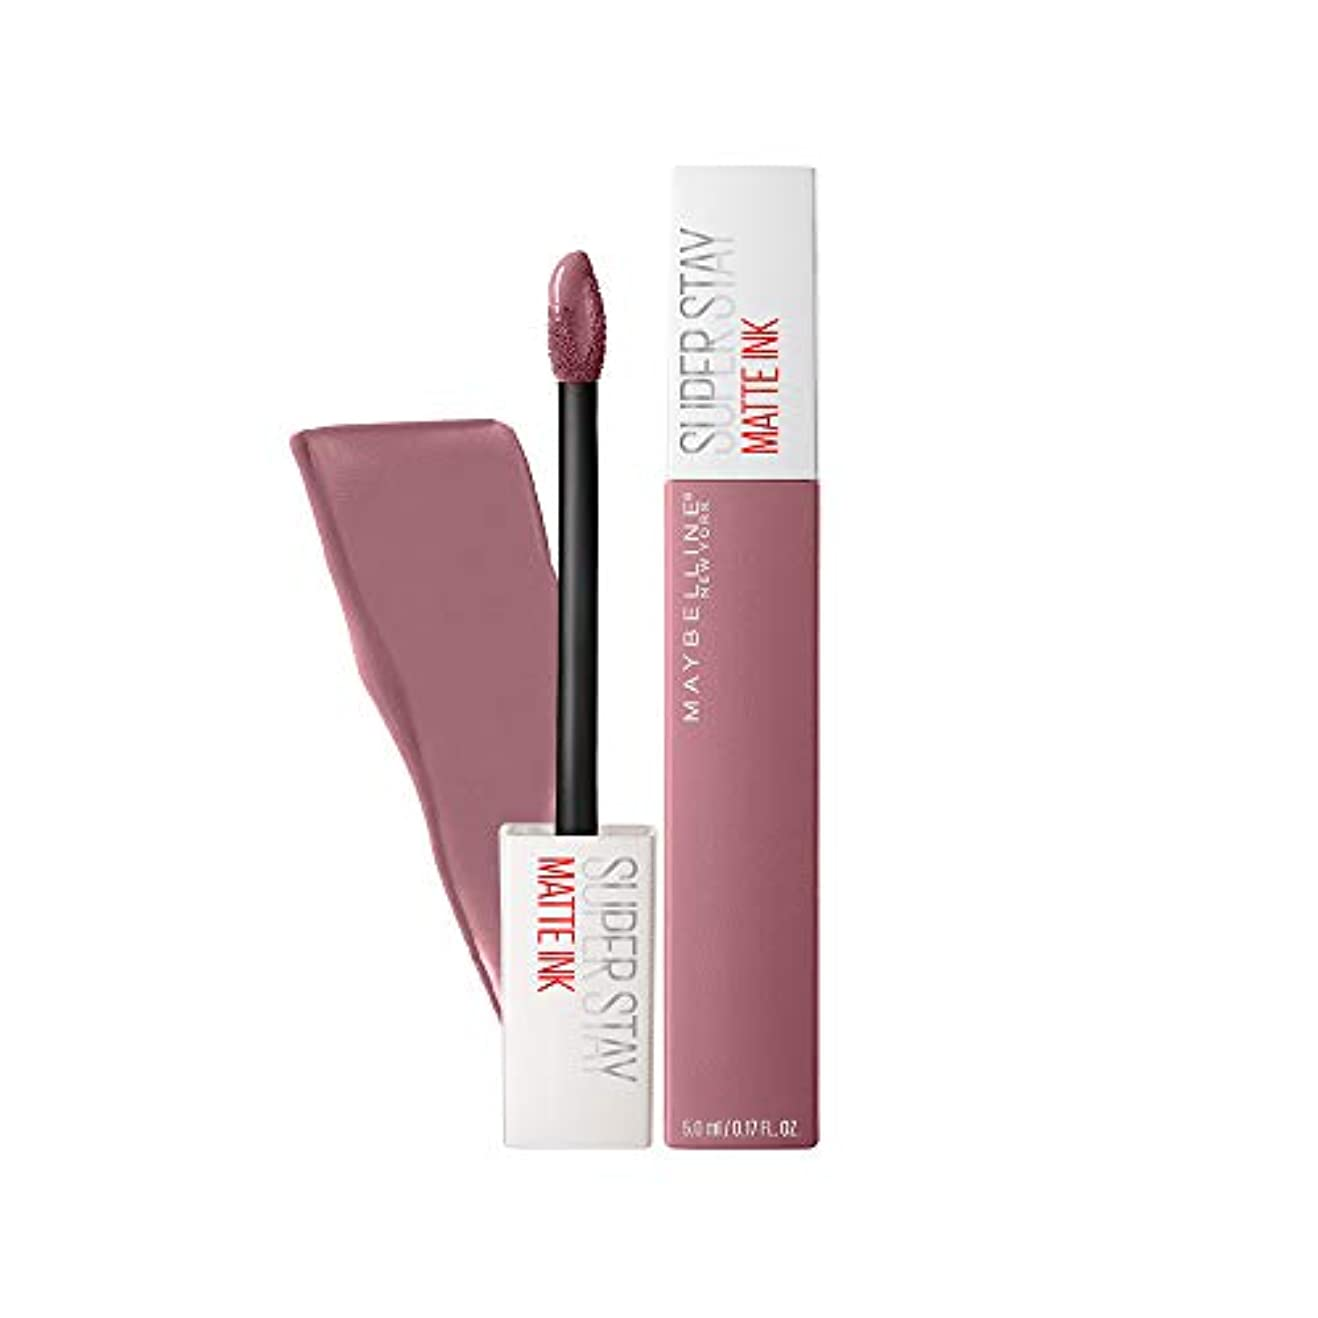 MAYBELLINE SuperStay Matte Ink - Visionary (並行輸入品)